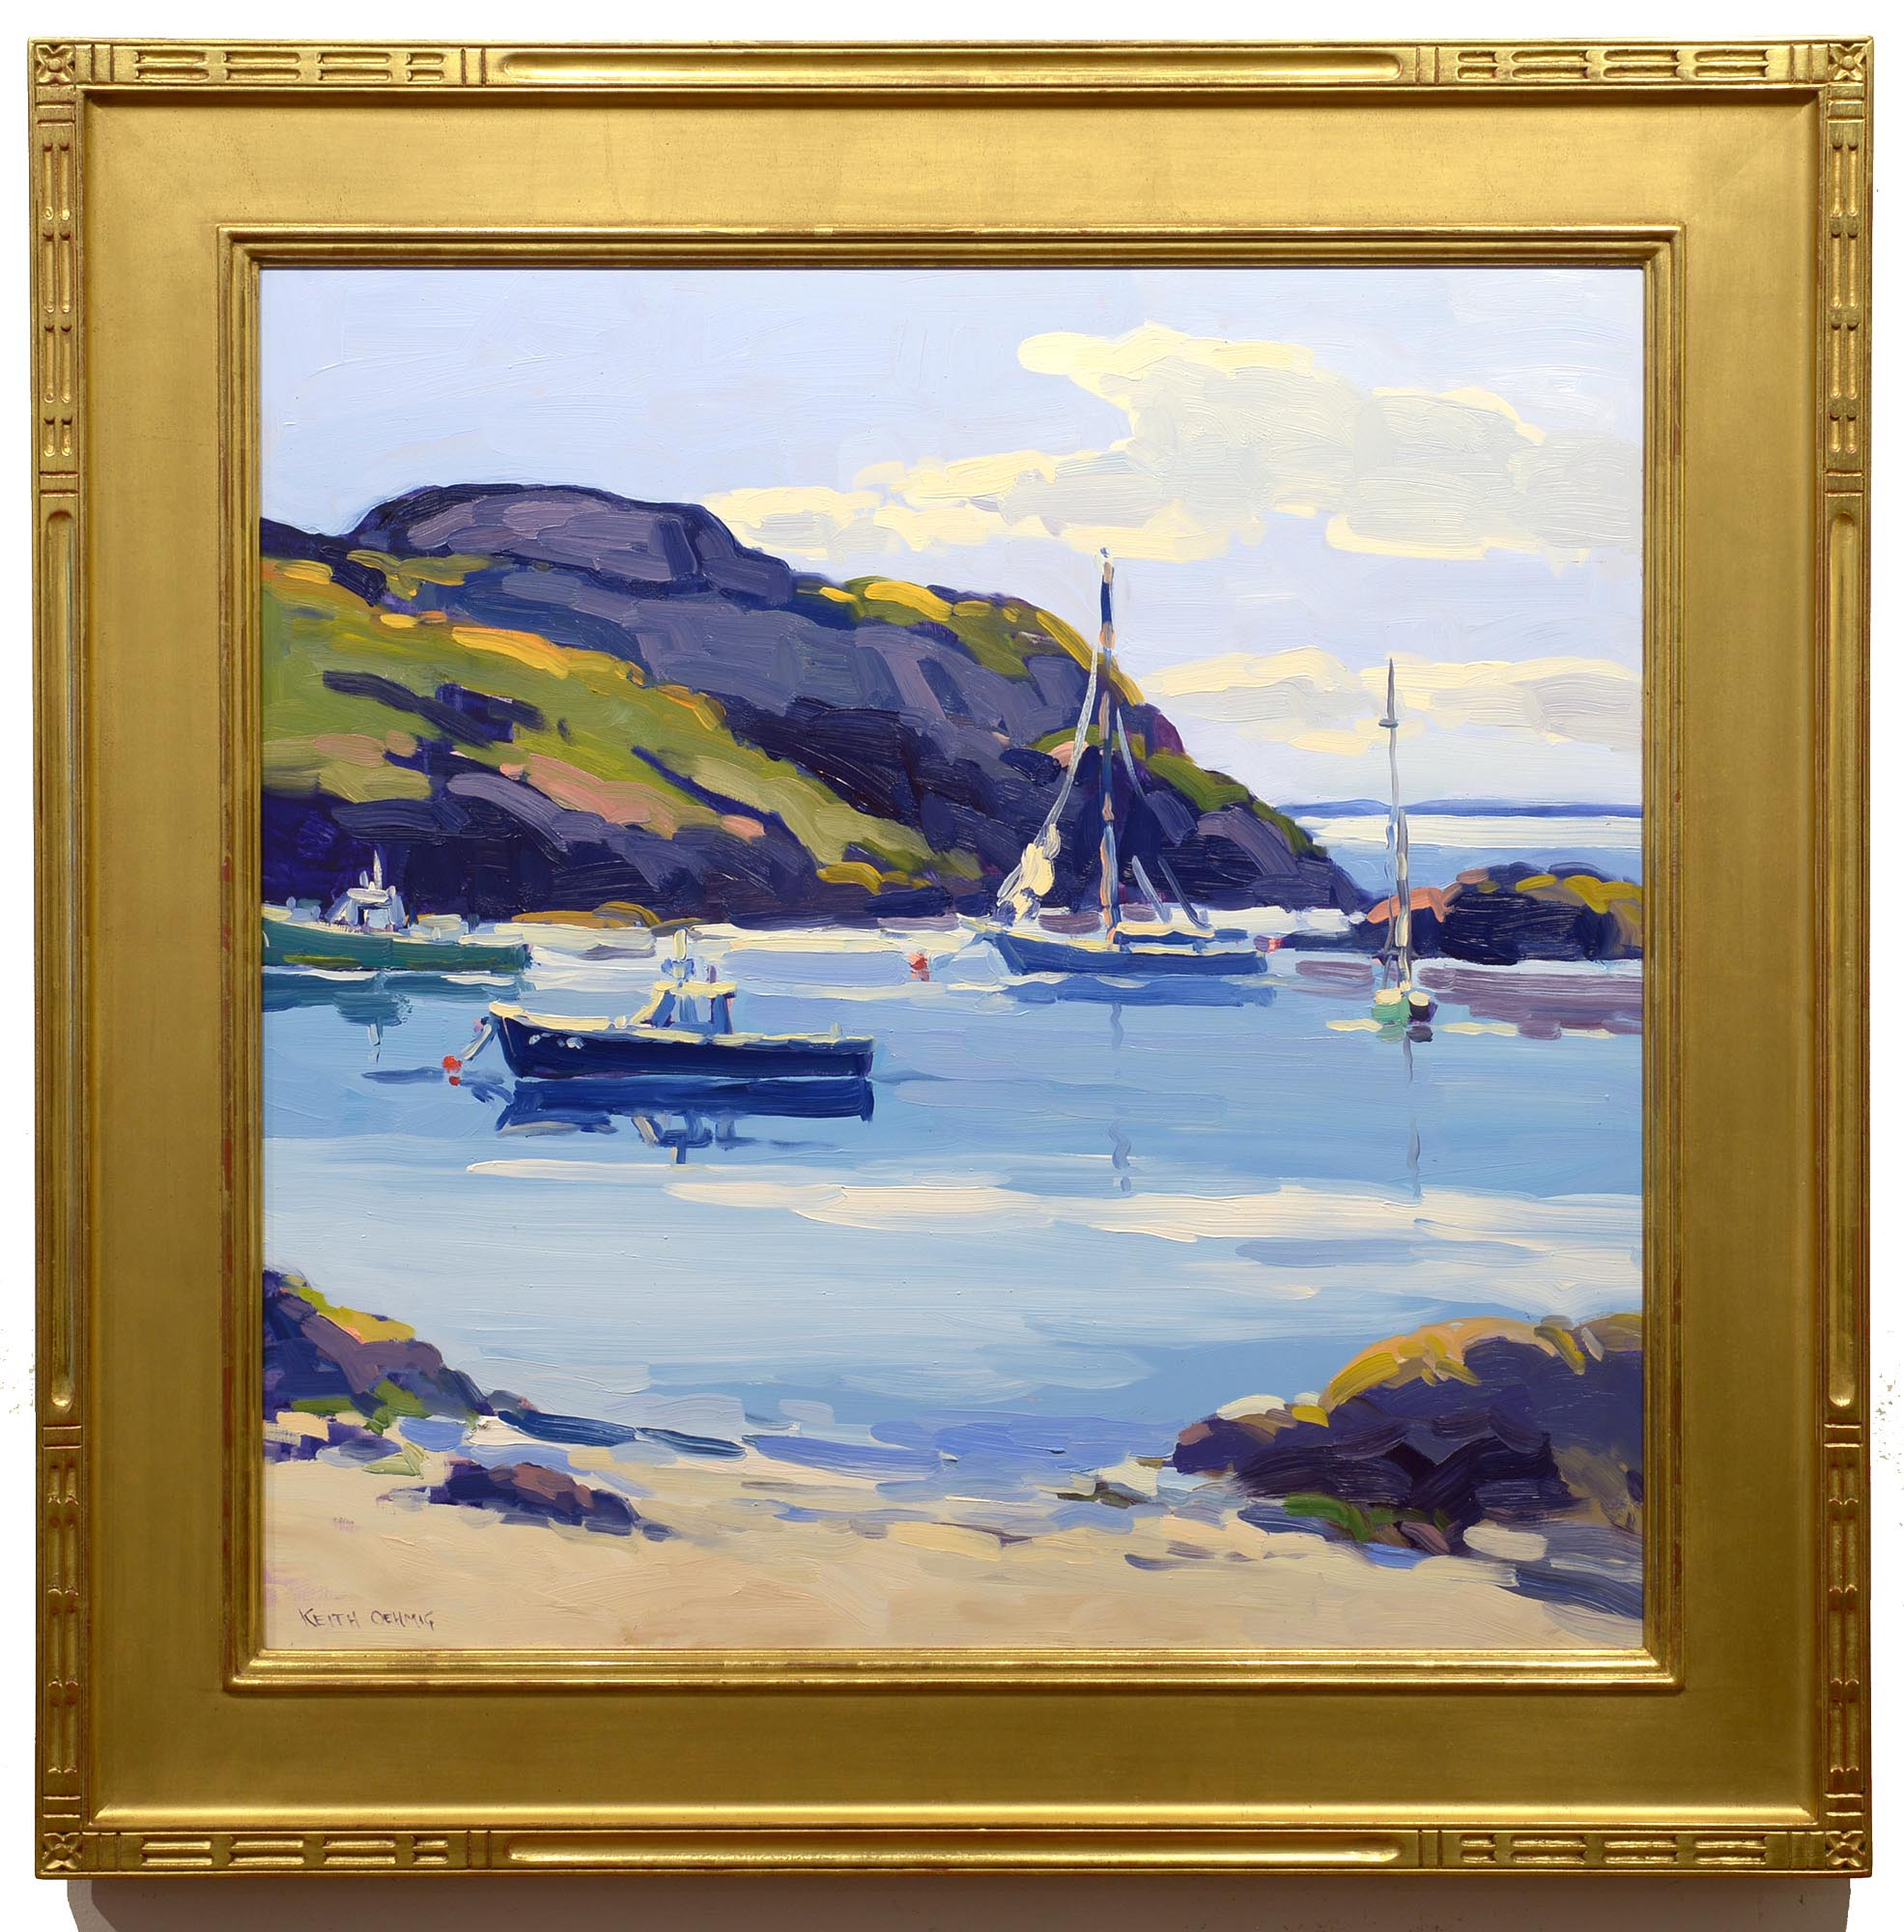 Keith Oehmig August Afternoon, Fish Beach framed